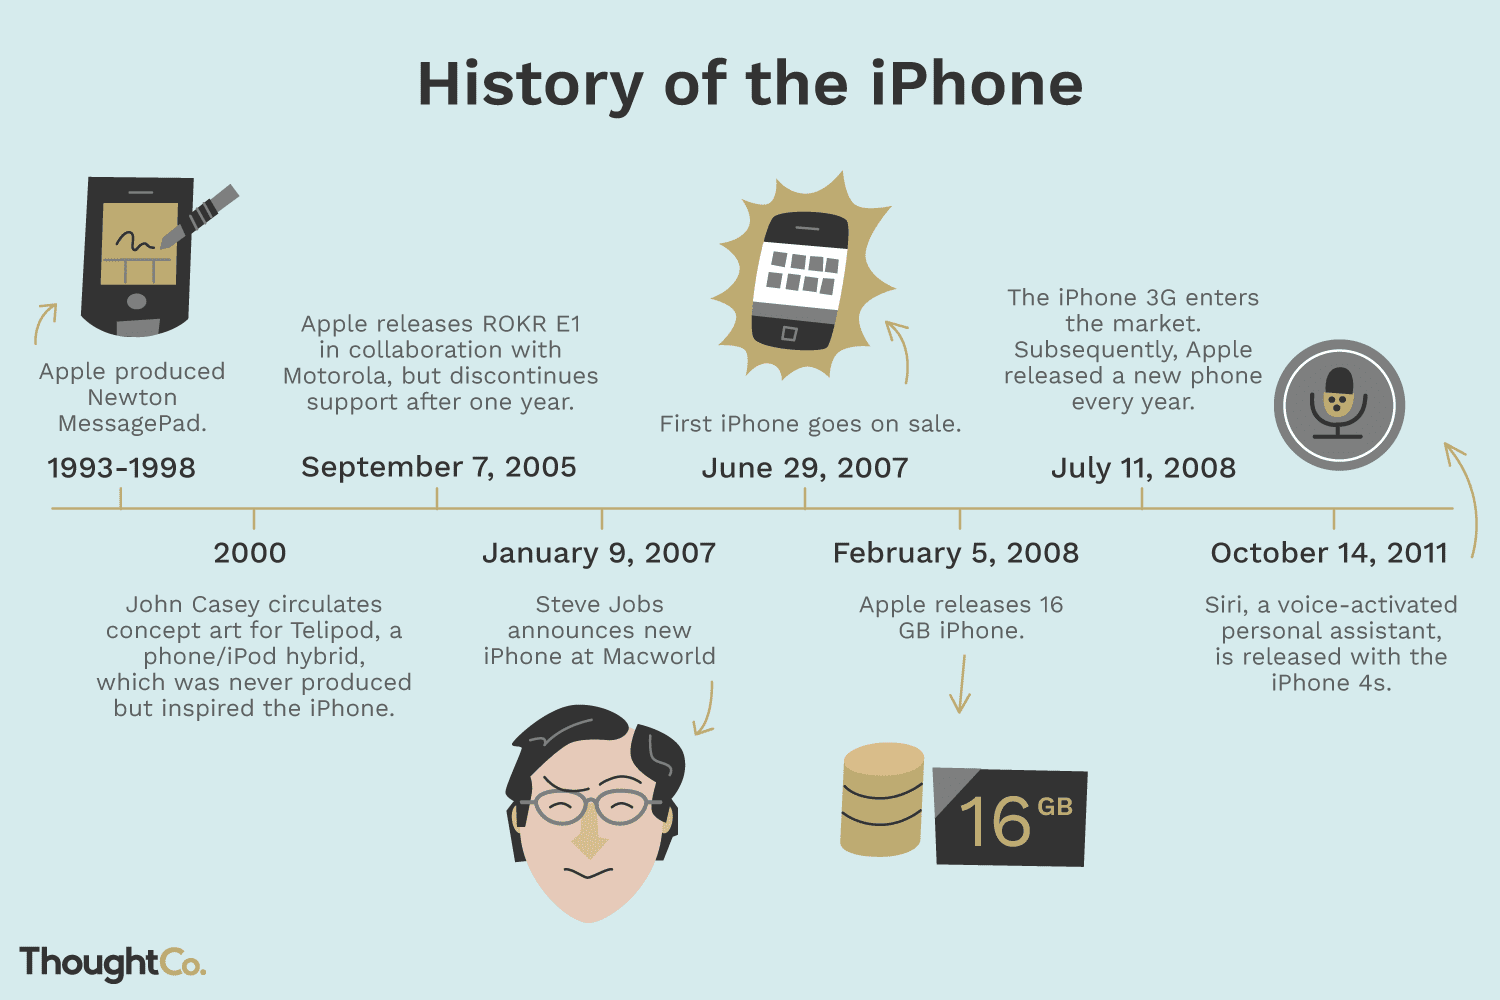 Who Invented the iPhone?